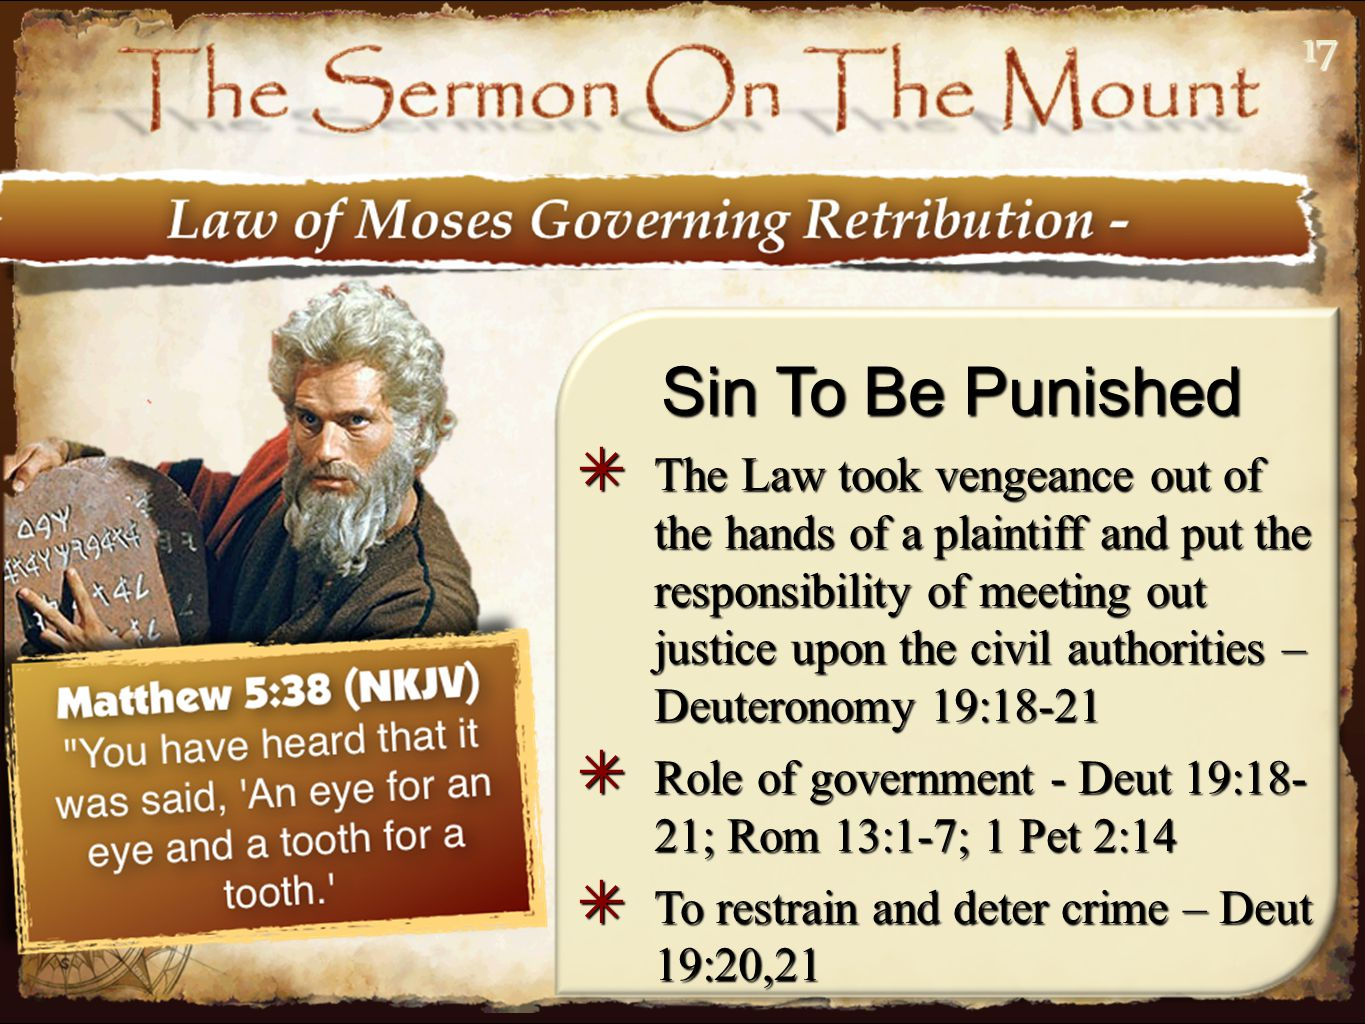 1717 Sin To Be Punished ✴ The Law took vengeance out of the hands of a plaintiff and put the responsibility of meeting out justice upon the civil authorities – Deuteronomy 19:18-21 ✴ Role of government - Deut 19:18- 21; Rom 13:1-7; 1 Pet 2:14 ✴ To restrain and deter crime – Deut 19:20,21